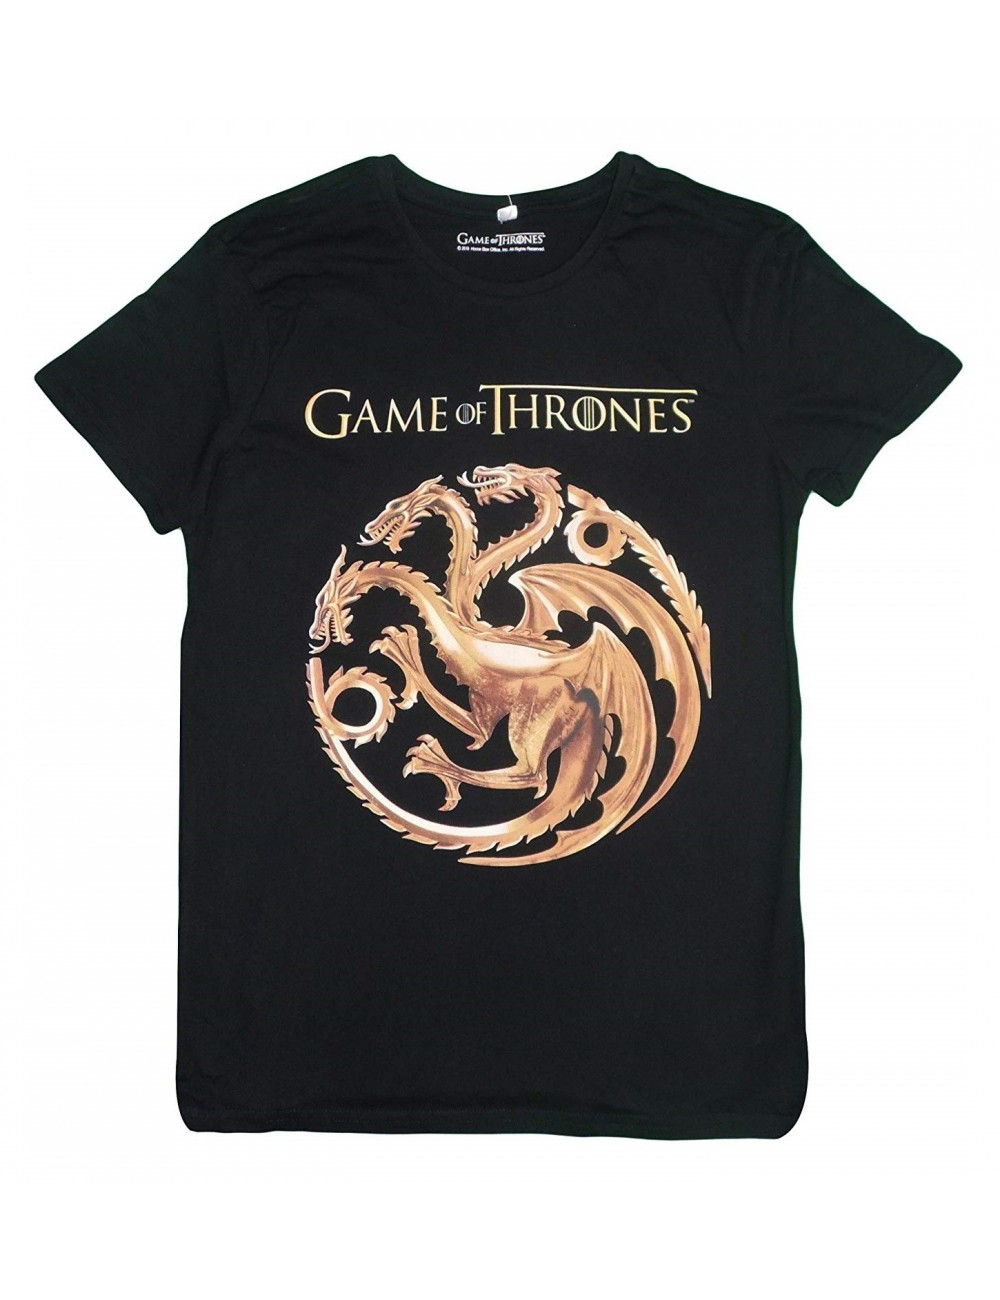 Tricou adulti, Game of Thrones - Casa Targaryen, S - XL